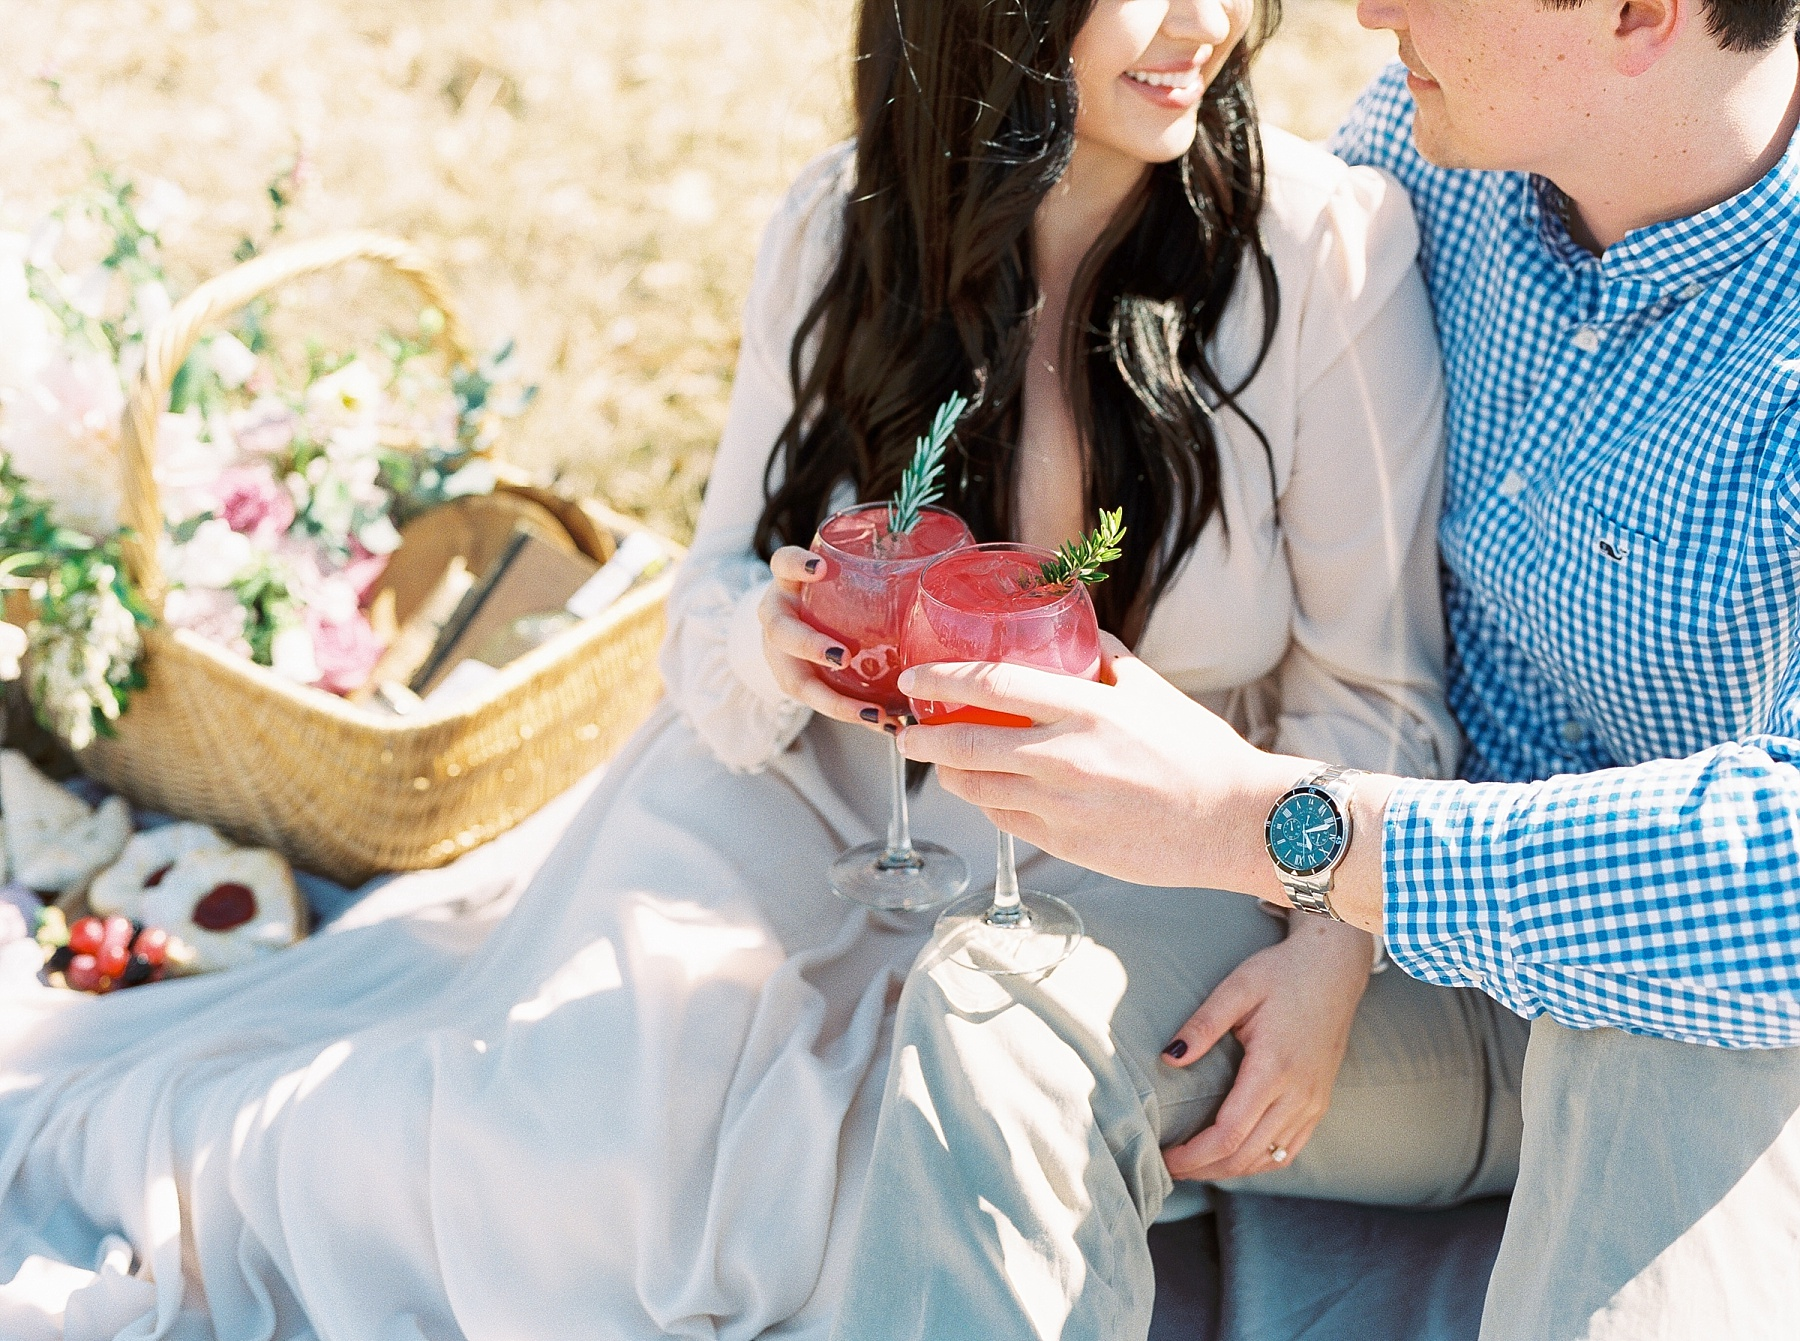 Late Fall Farm-to-table Inspired Brunch Picnic Engagement Session During Wedding Weekend by Kelsi Kliethermes Photography Best Missouri and Maui Wedding Photographer_0002.jpg